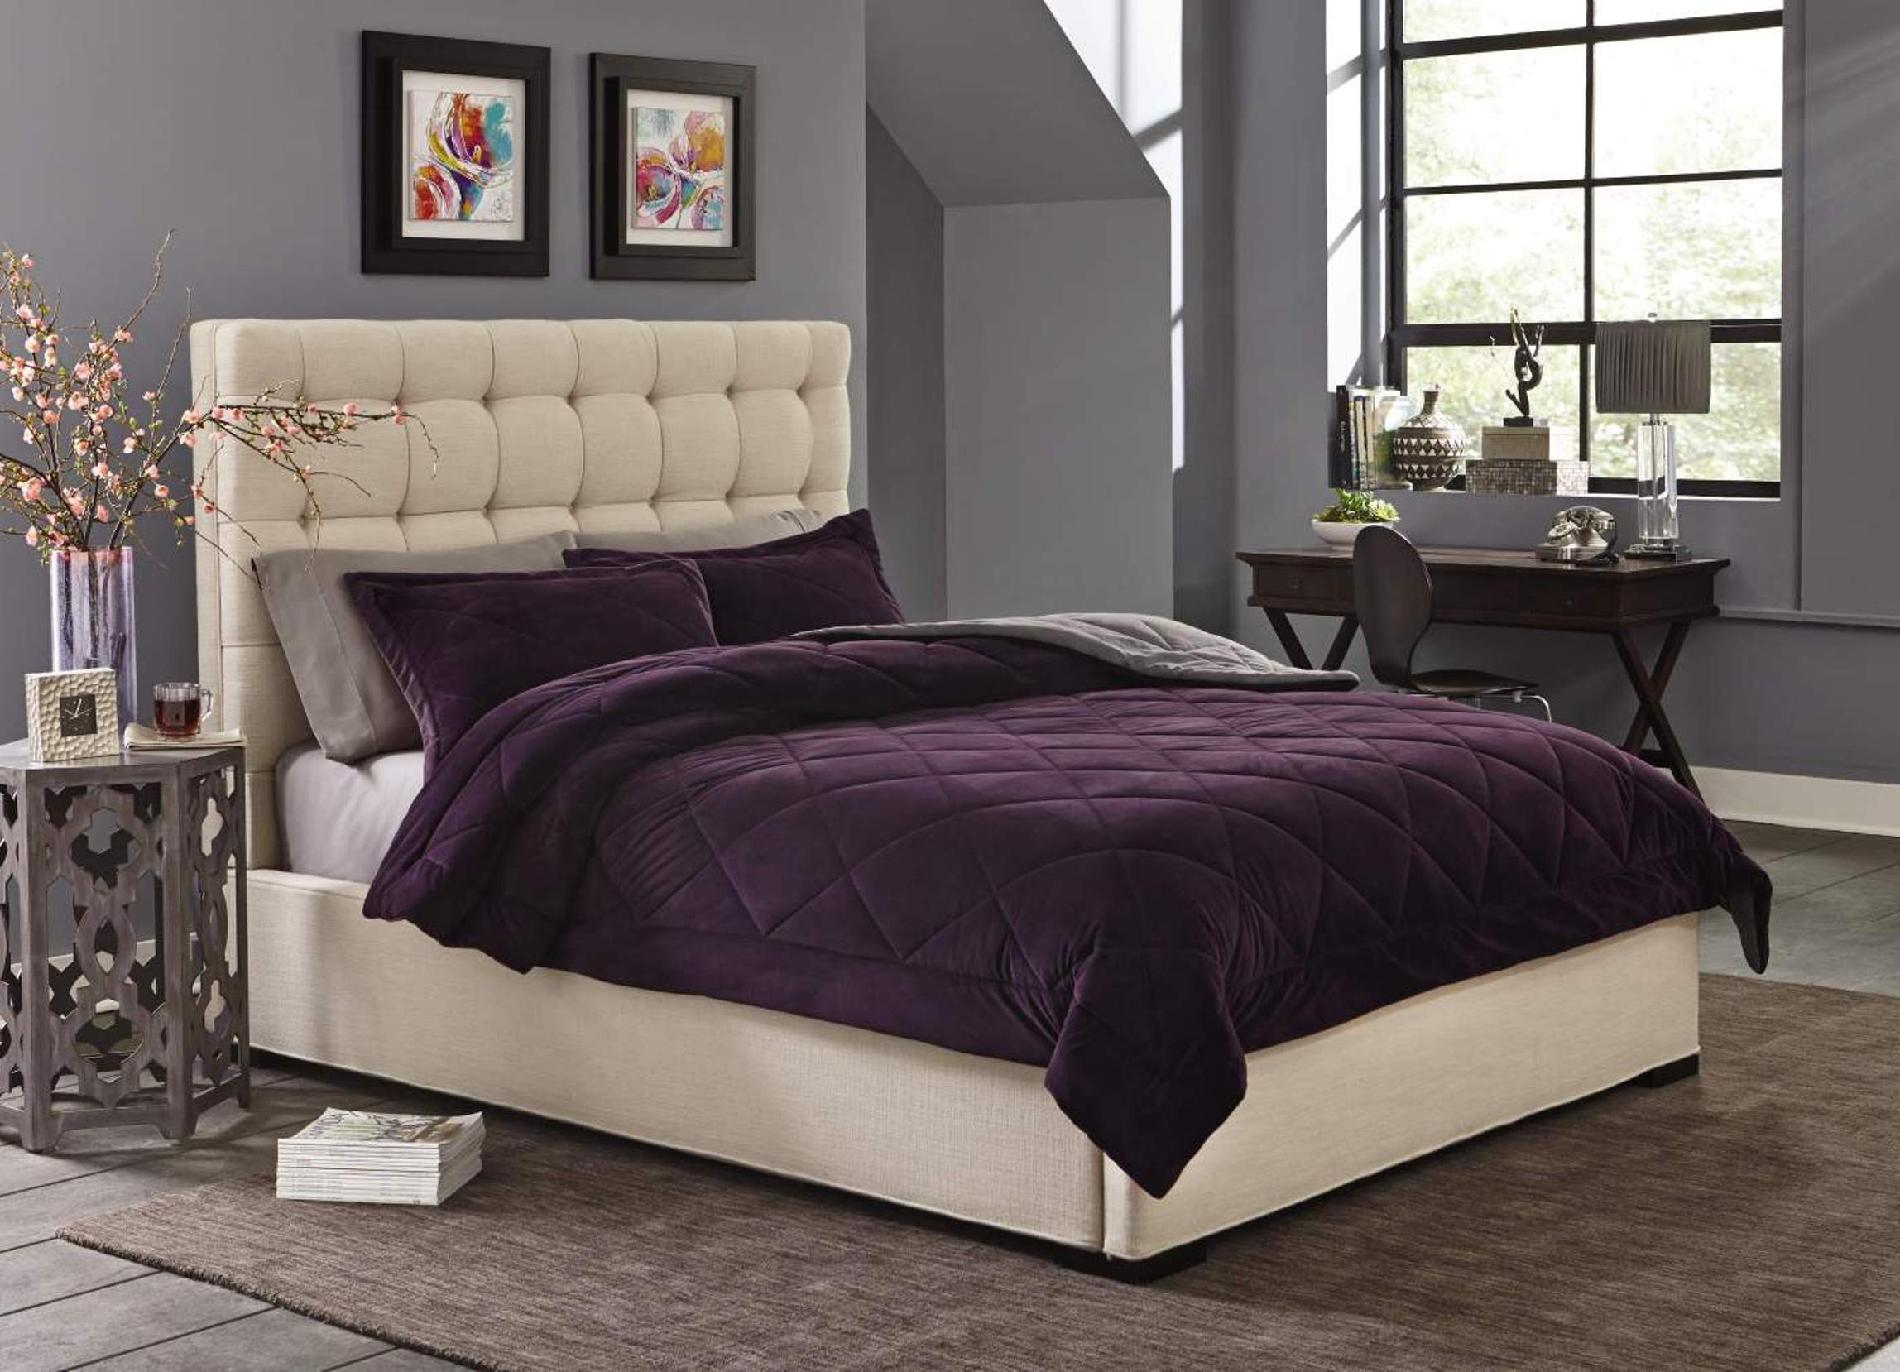 Cannon Silky Velvet Comforter Set Purple - Home Bed